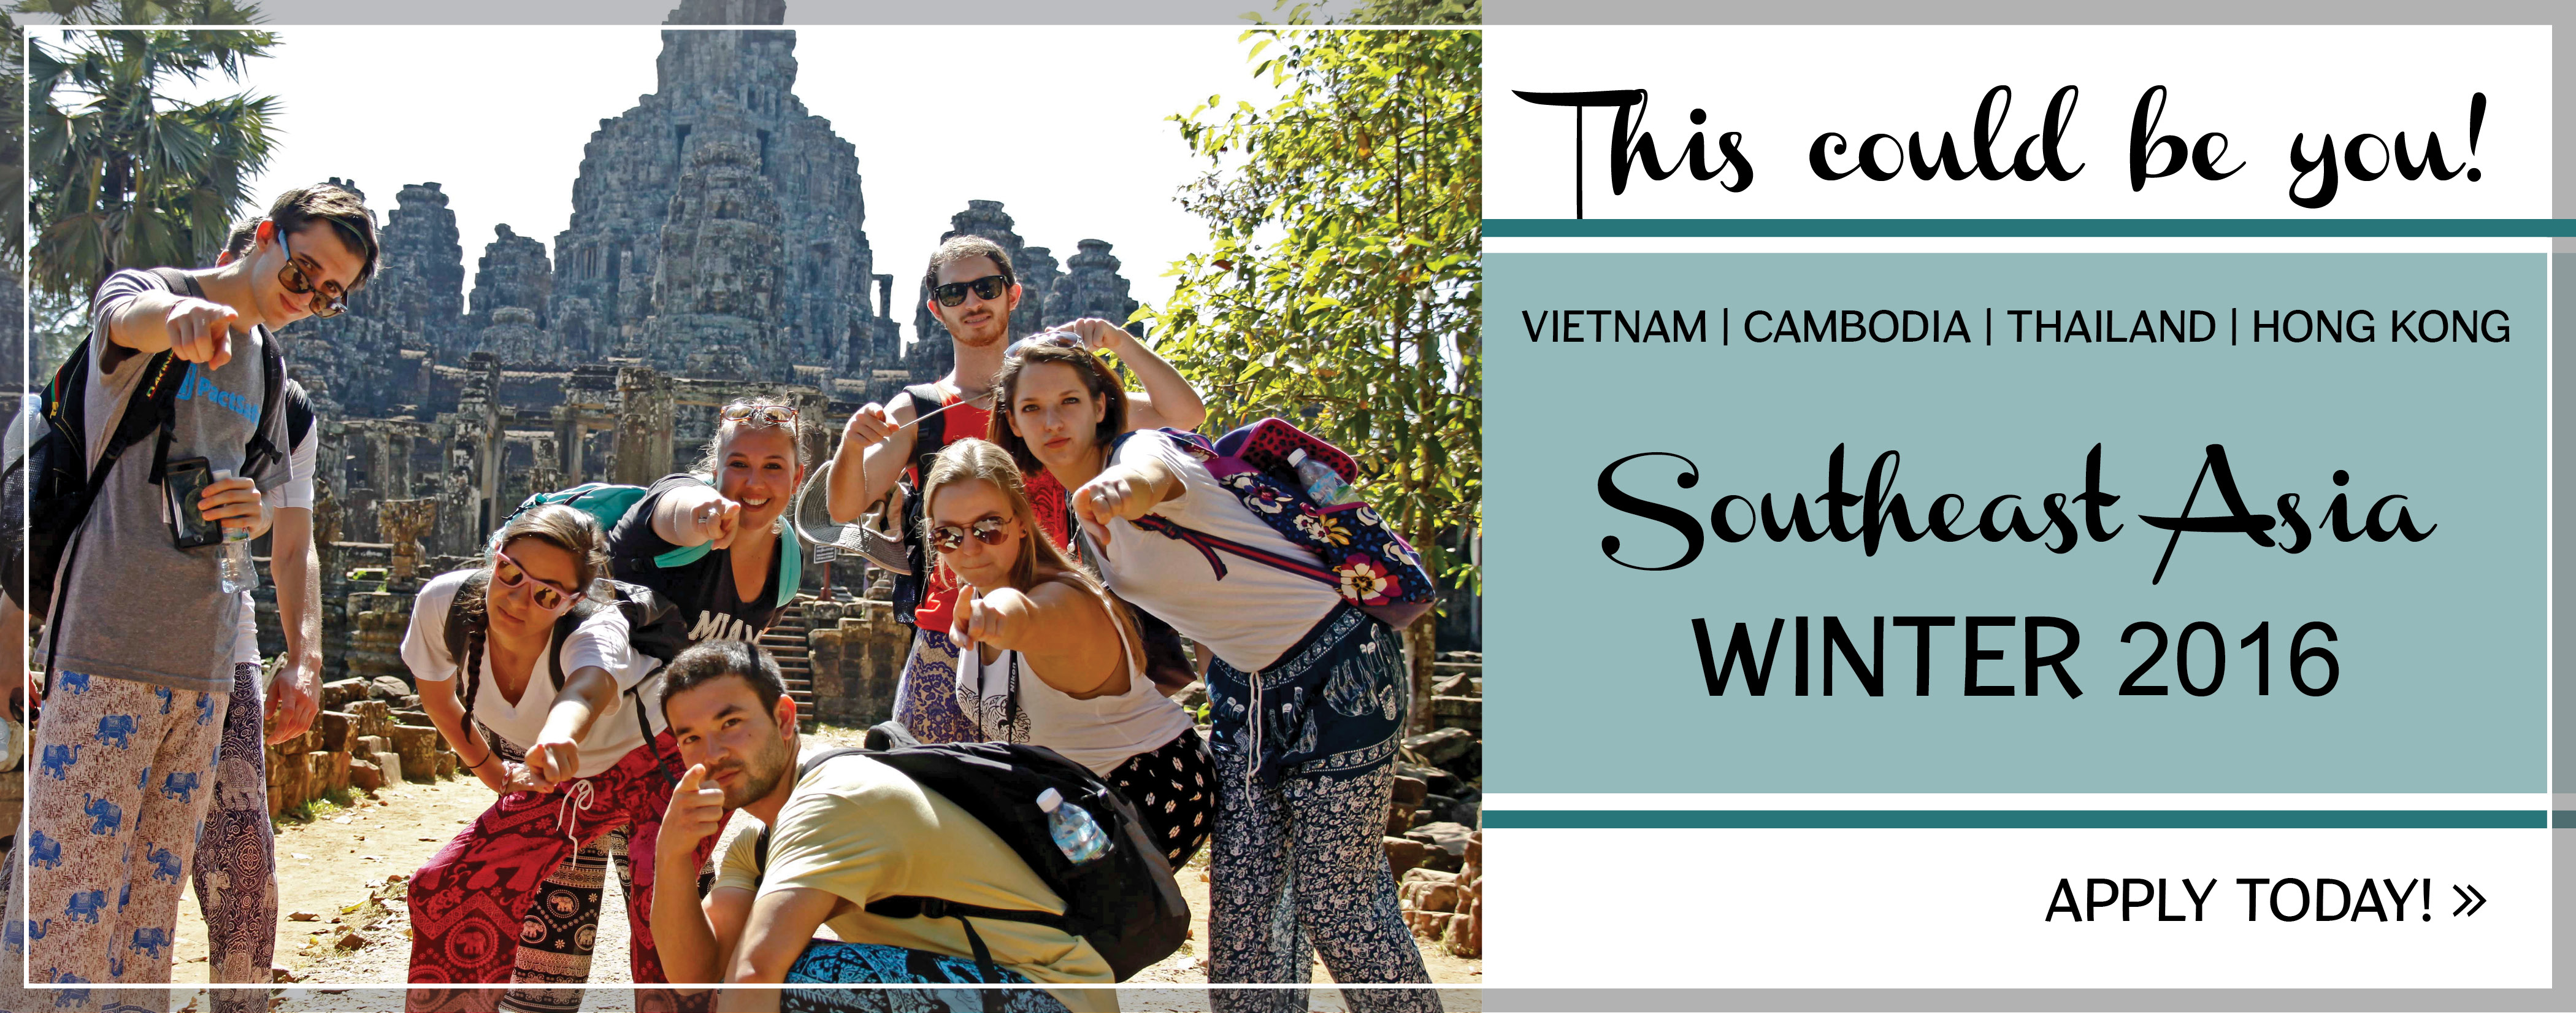 Students in Cambodia-This could be you!  Vietnam, Cambodia, Thailand, Hong Kong.  Southeast Asia Winter 2016.  APPLY TODAY!